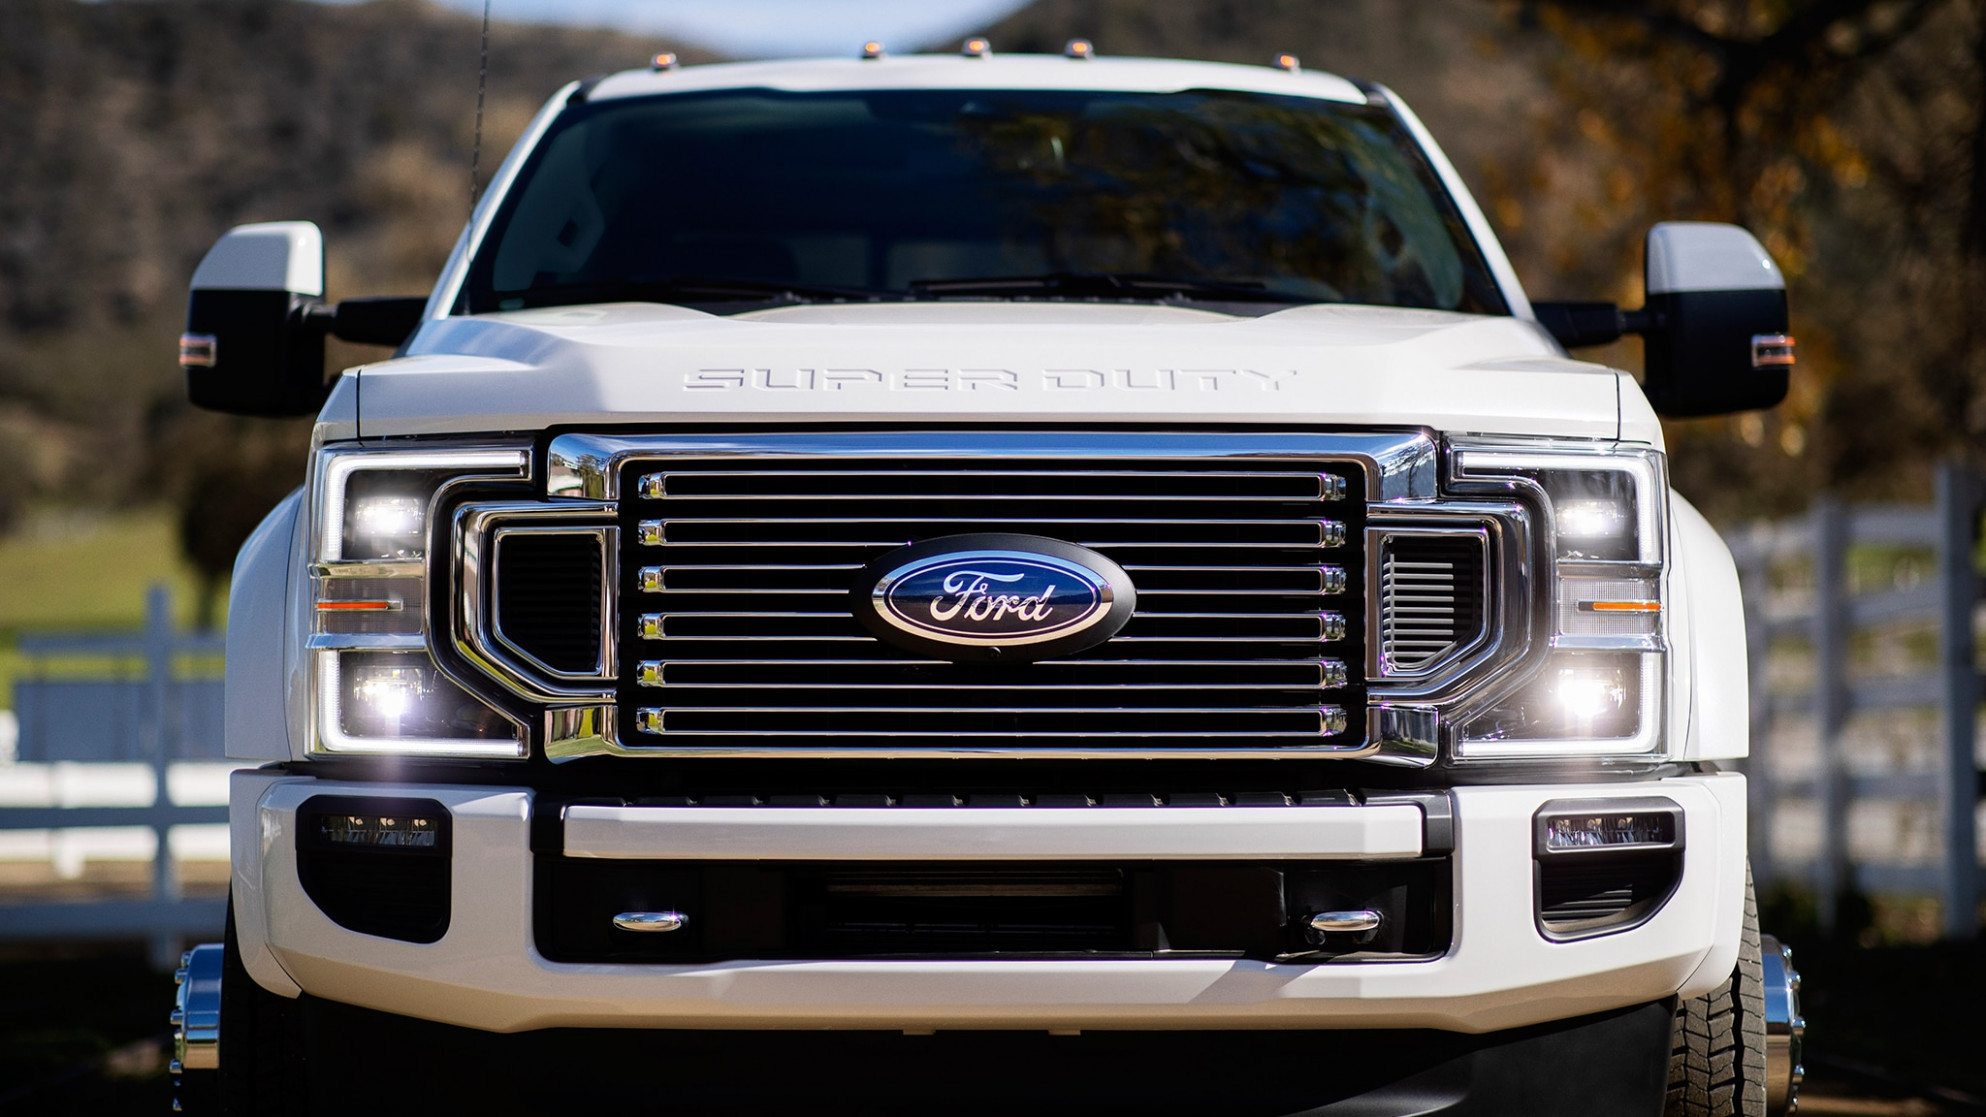 New Model and Performance 2022 Spy Shots Ford F350 Diesel